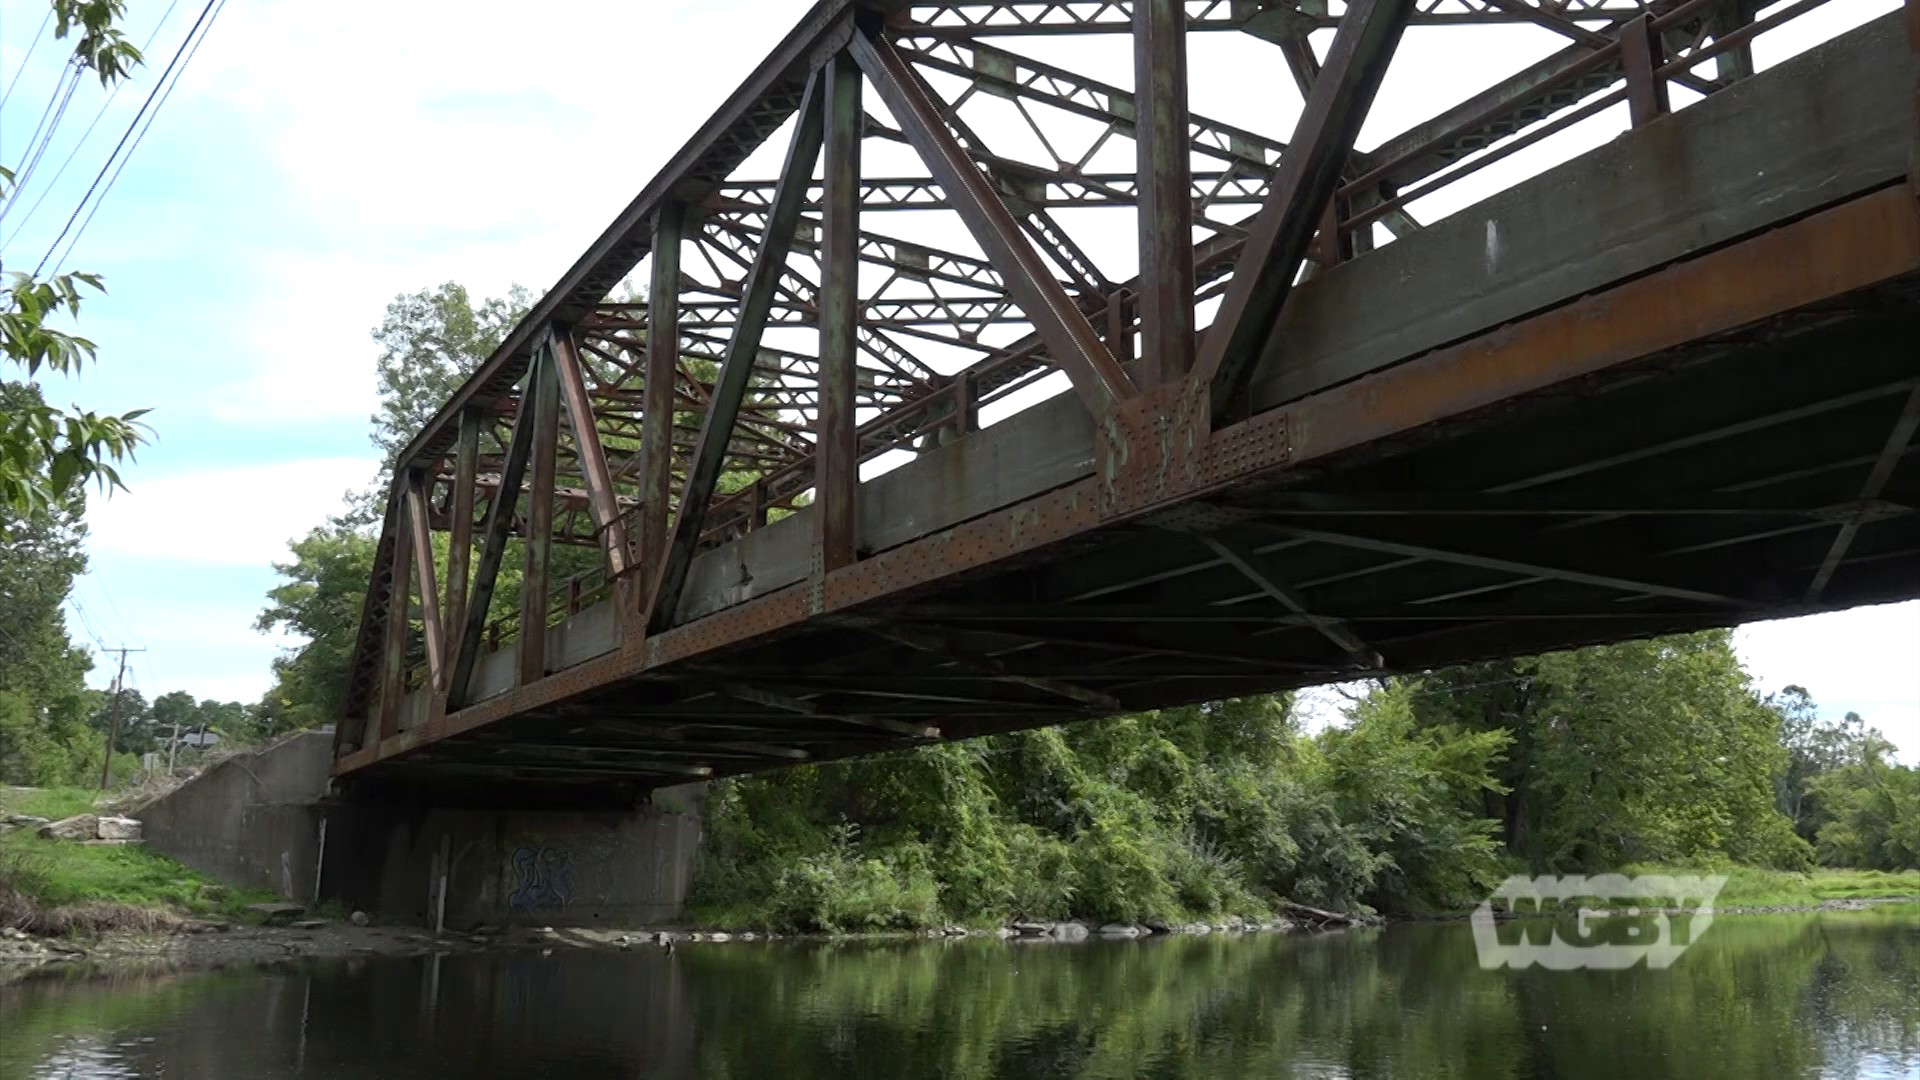 Brian Sullivan examines how the closure of the Division Street Bridge in Housatonic will impact local businesses like Taft Farms in Great Barrington, MA.